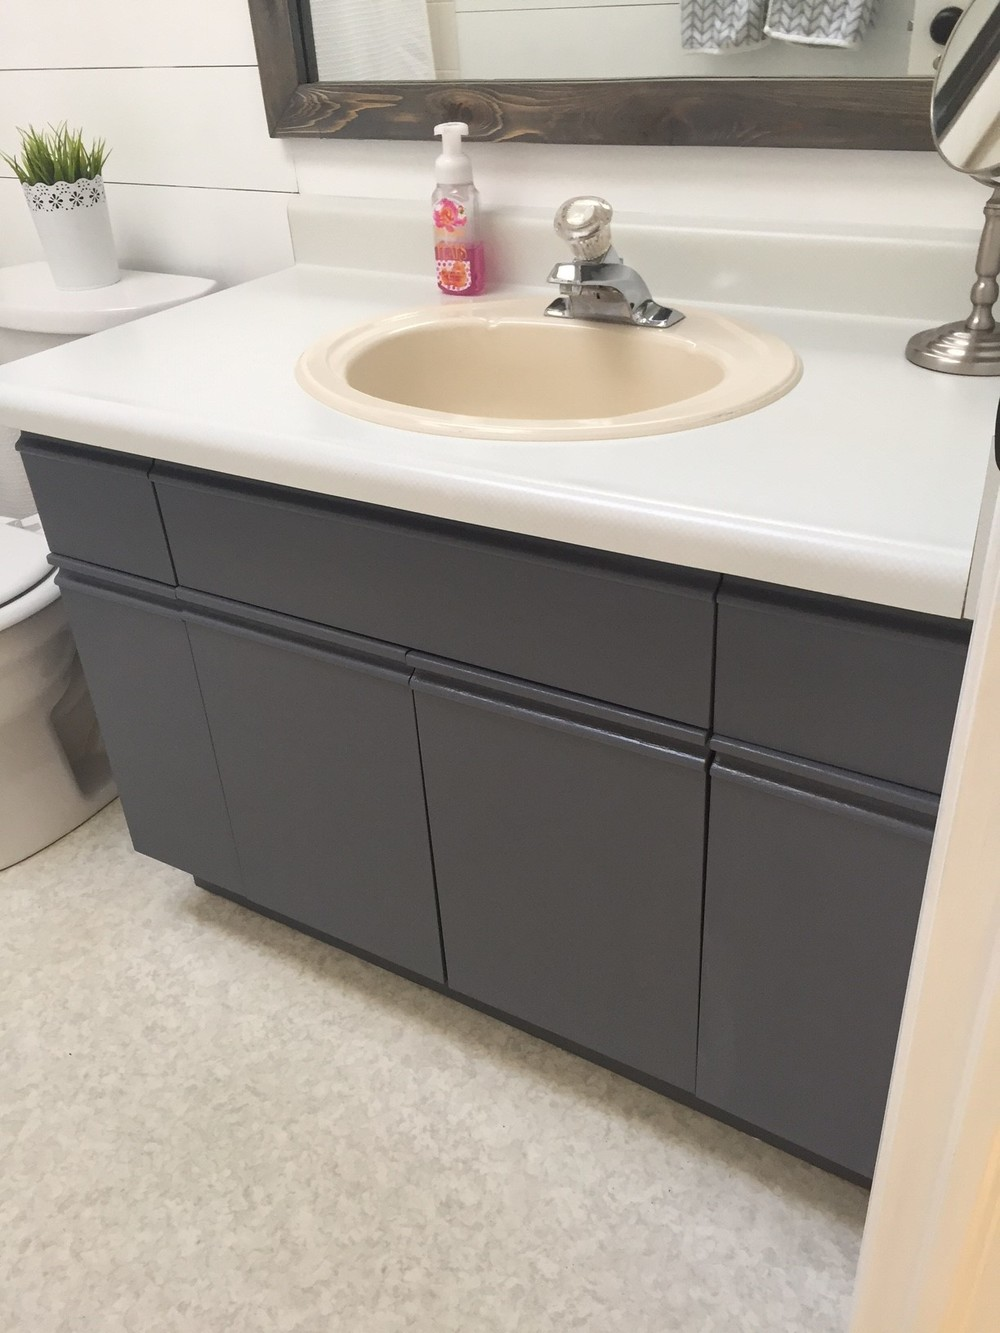 Bathroom Update How To Paint Laminate Cabinets The Penny Drawer - Painting bathroom vanity laminate